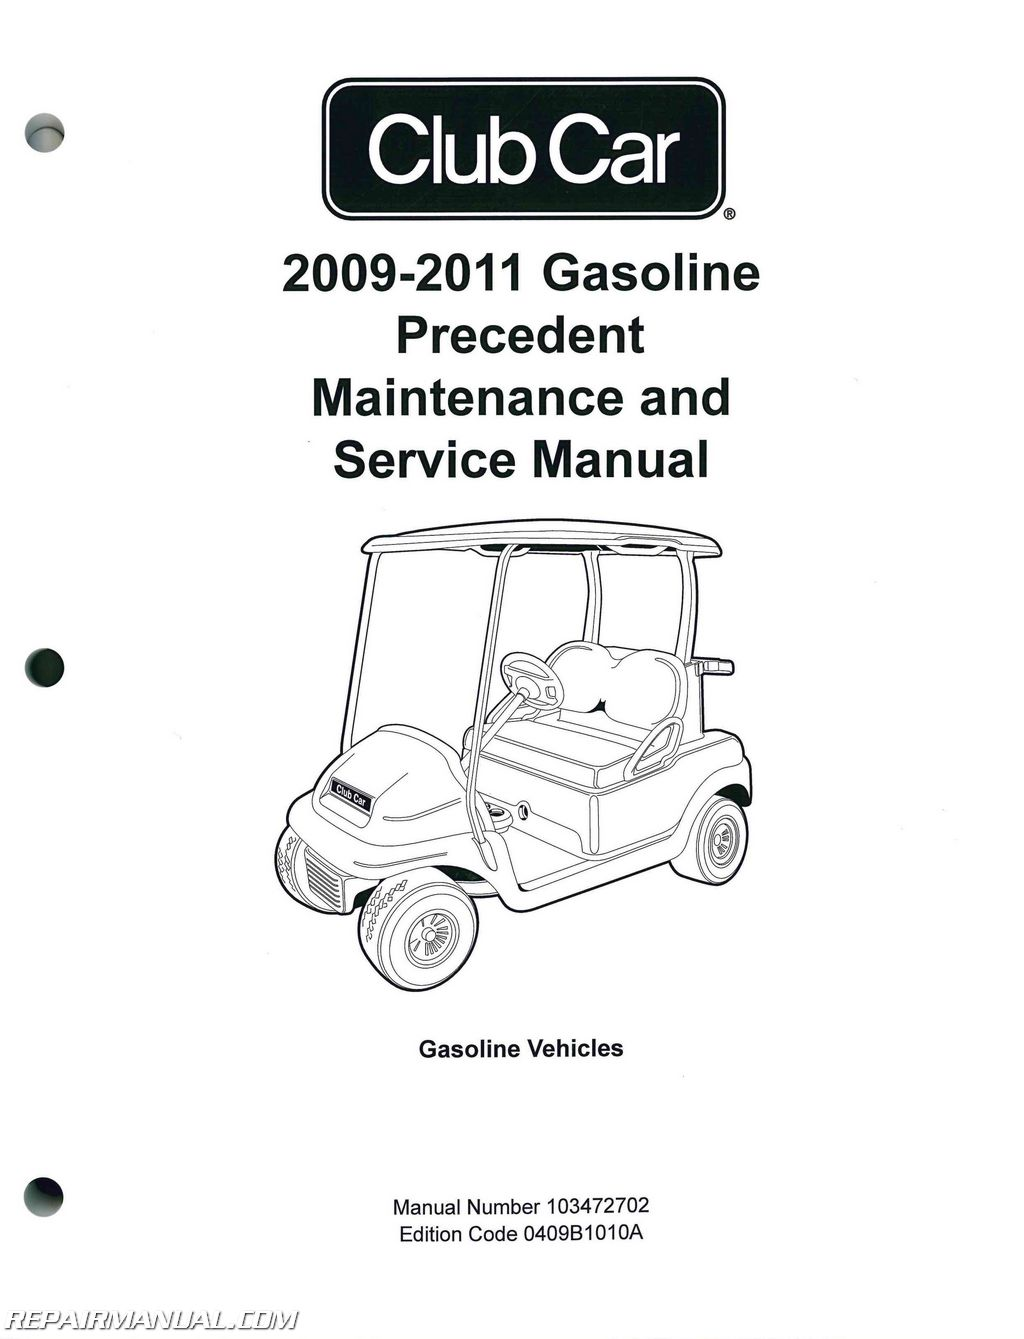 Club car golf cart manuals repair manuals online publicscrutiny